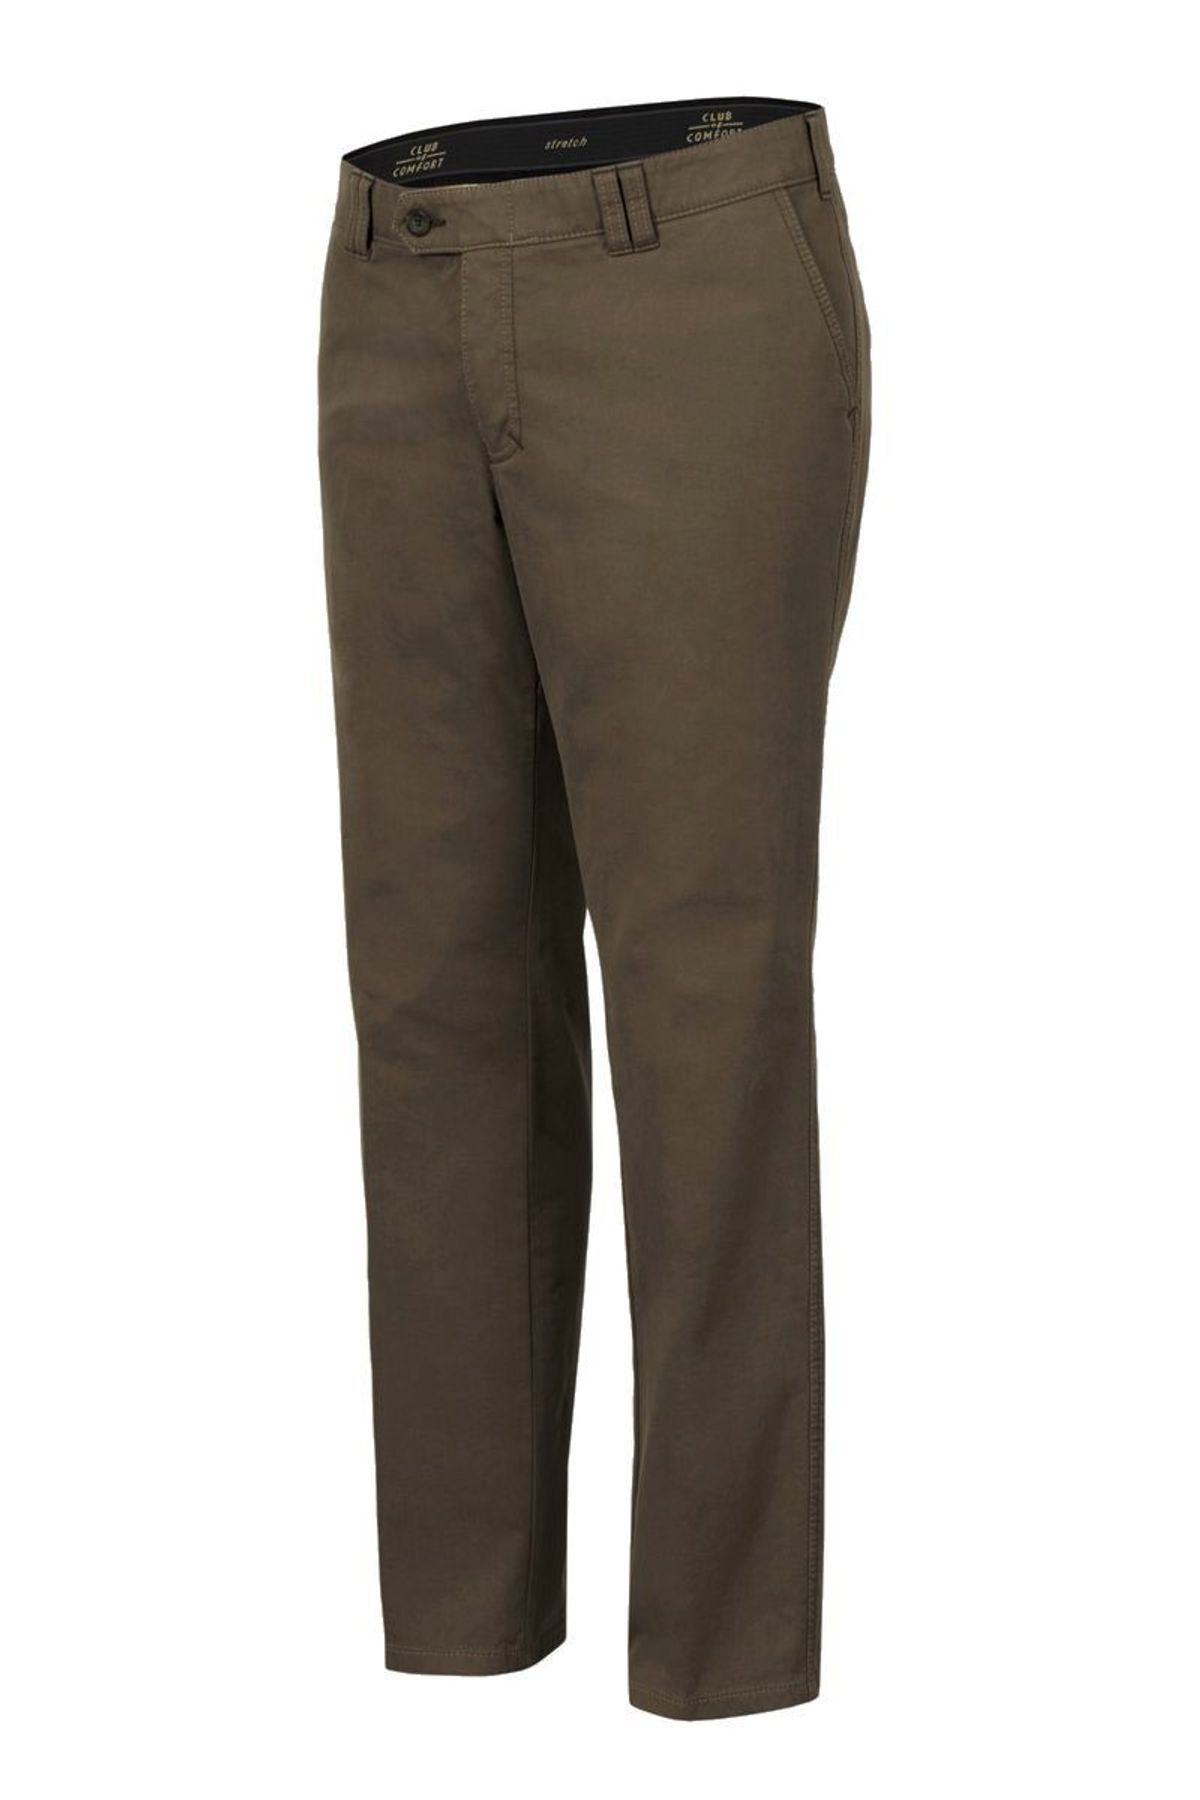 Club of Comfort - Herren Flat Front Hose mit Thermolite in drei Farben, Dallas (5226) – Bild 6